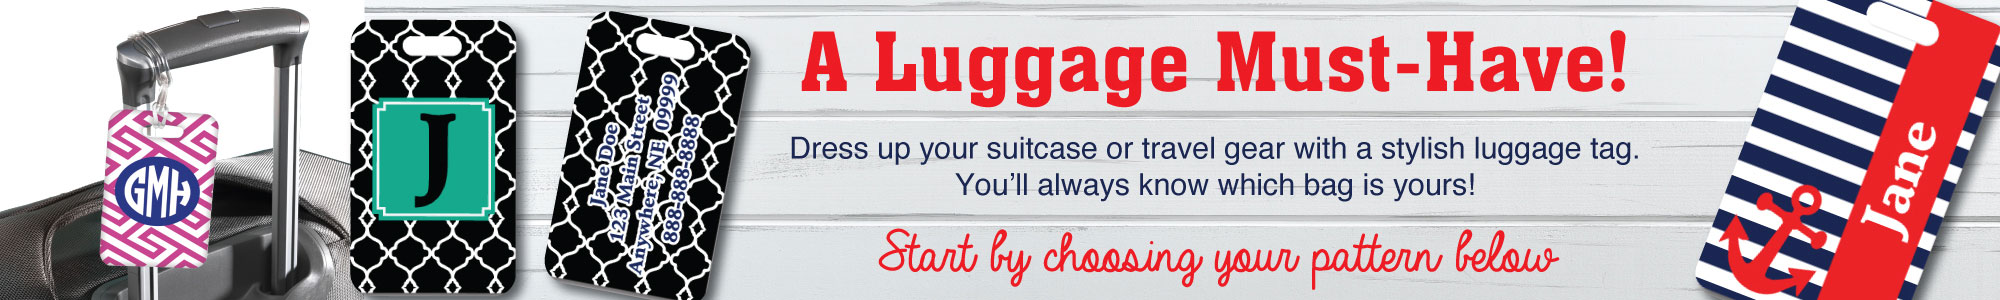 A luggage must have. Dress up your suitcase or travel gear with a stylish luggage tag. You'll always know which bag is yours!